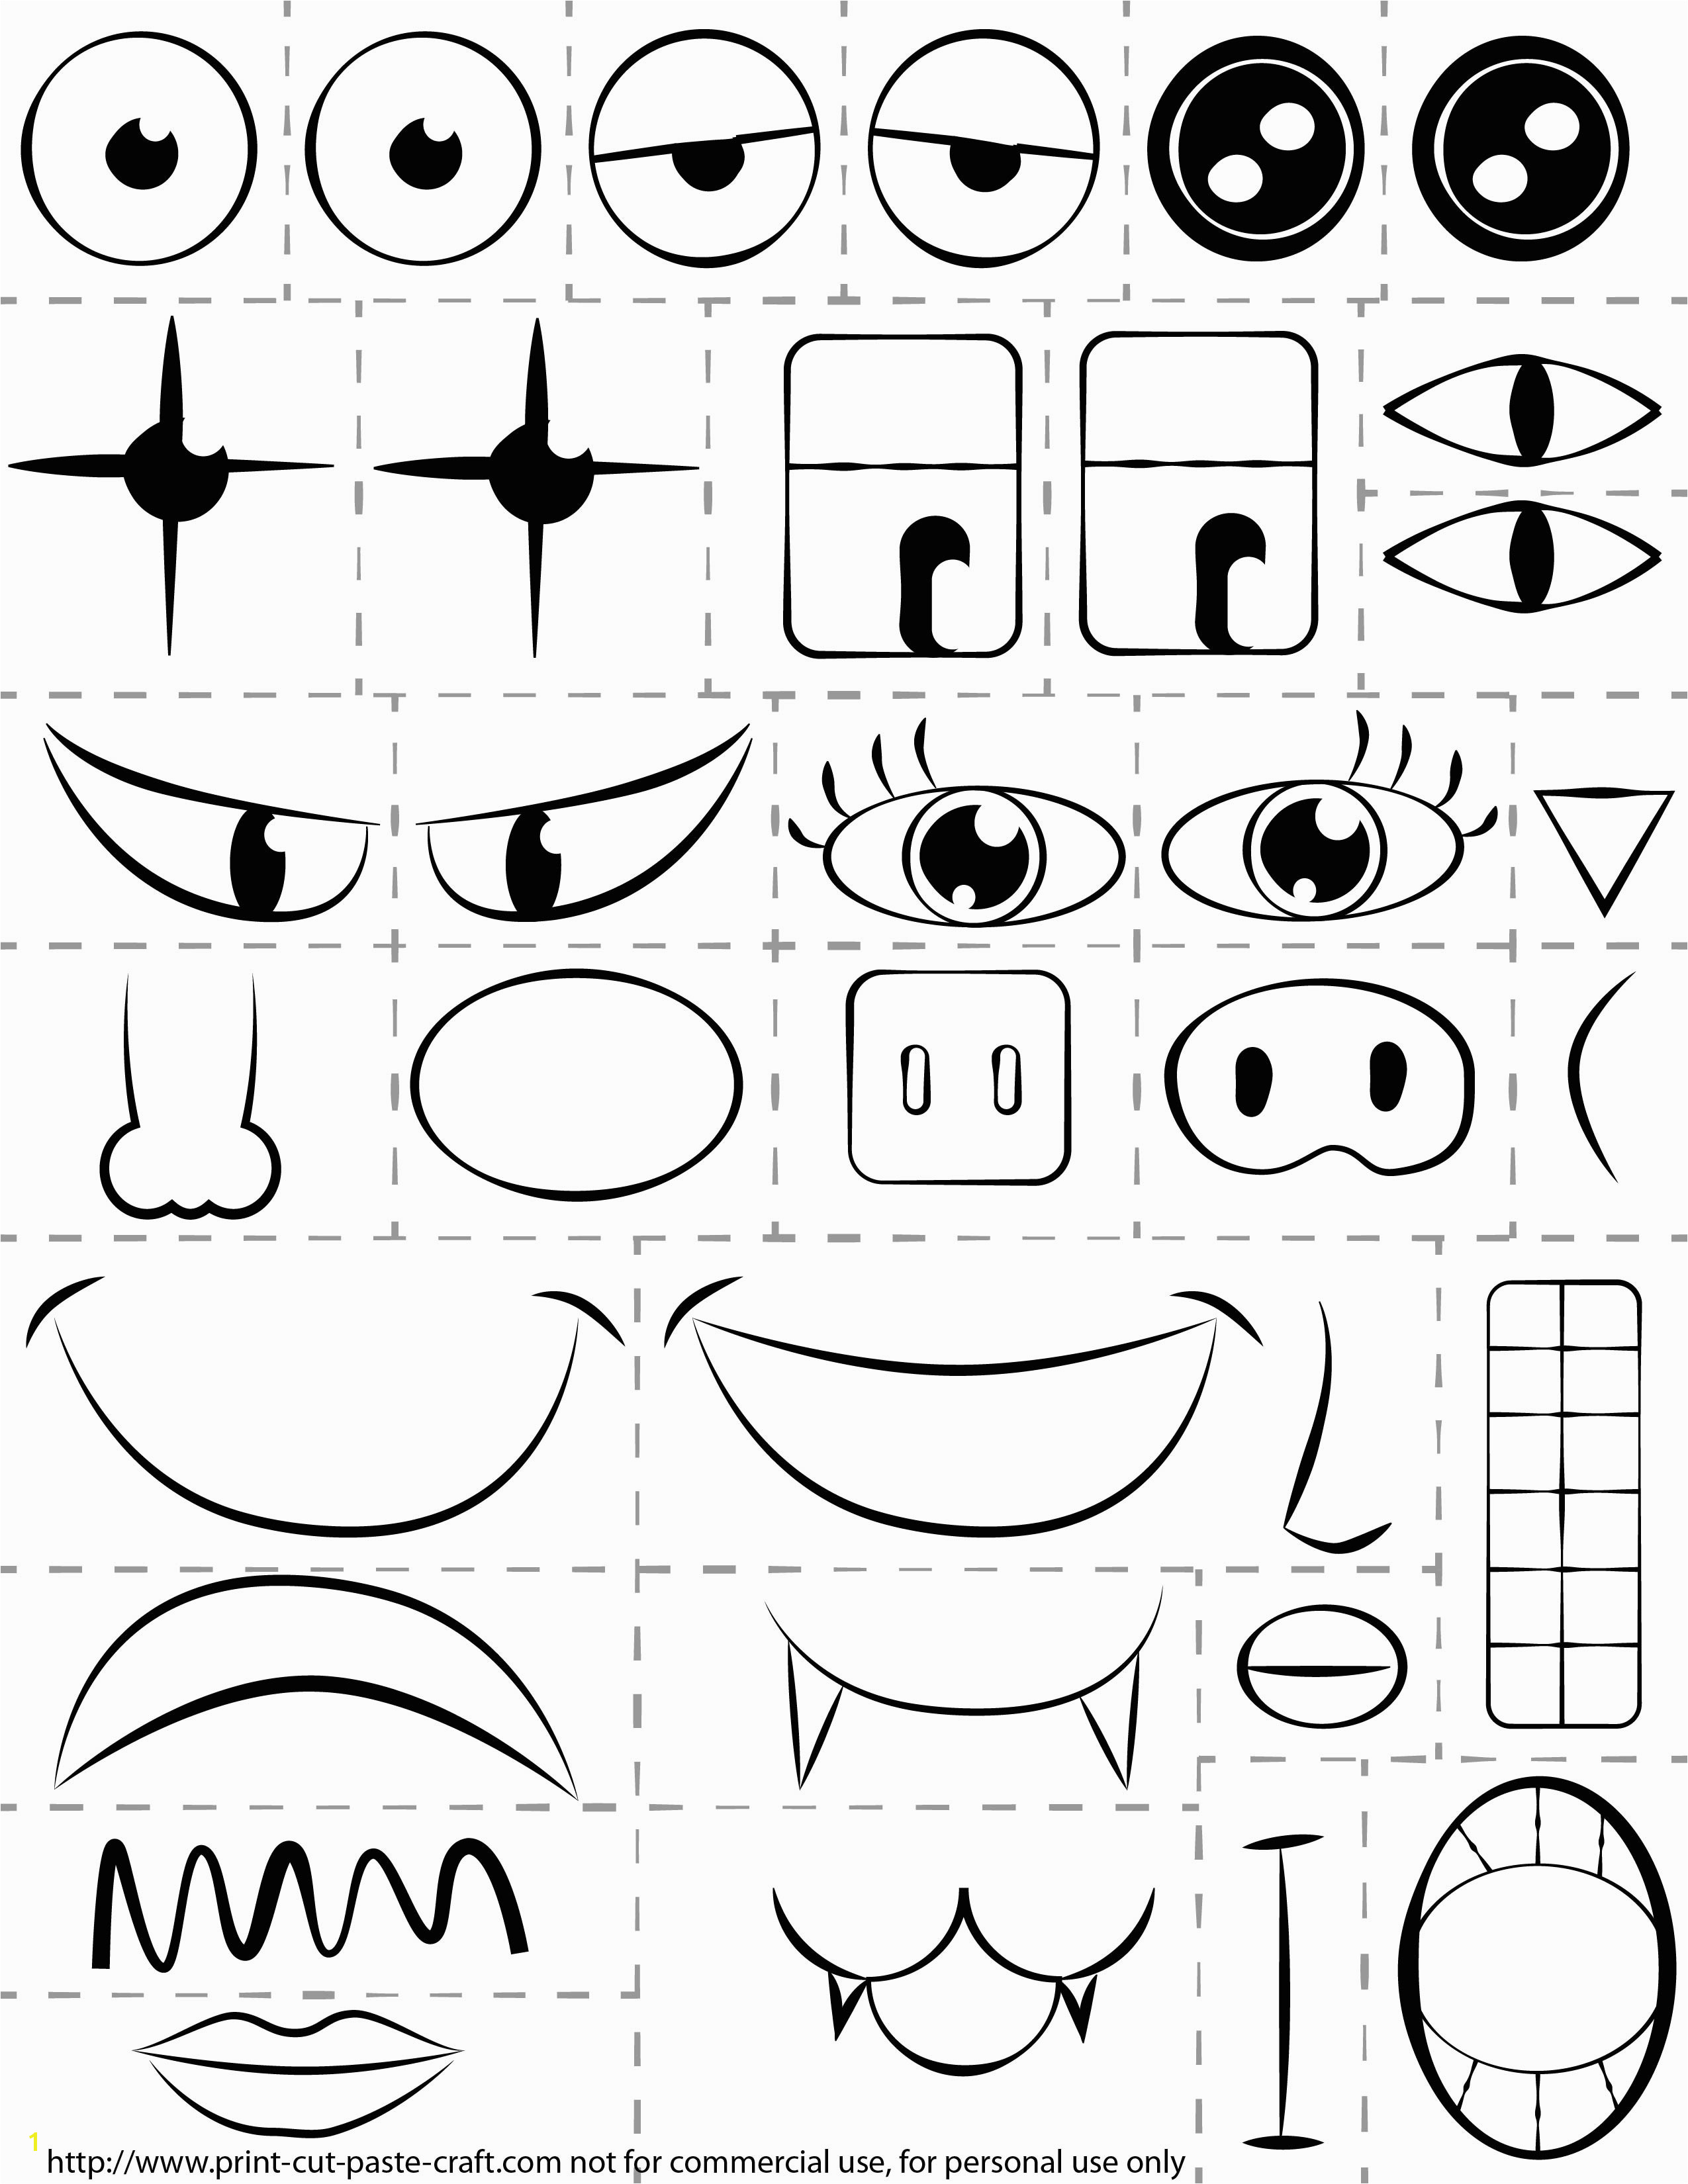 Print Cut Paste Craft Coloring Pages